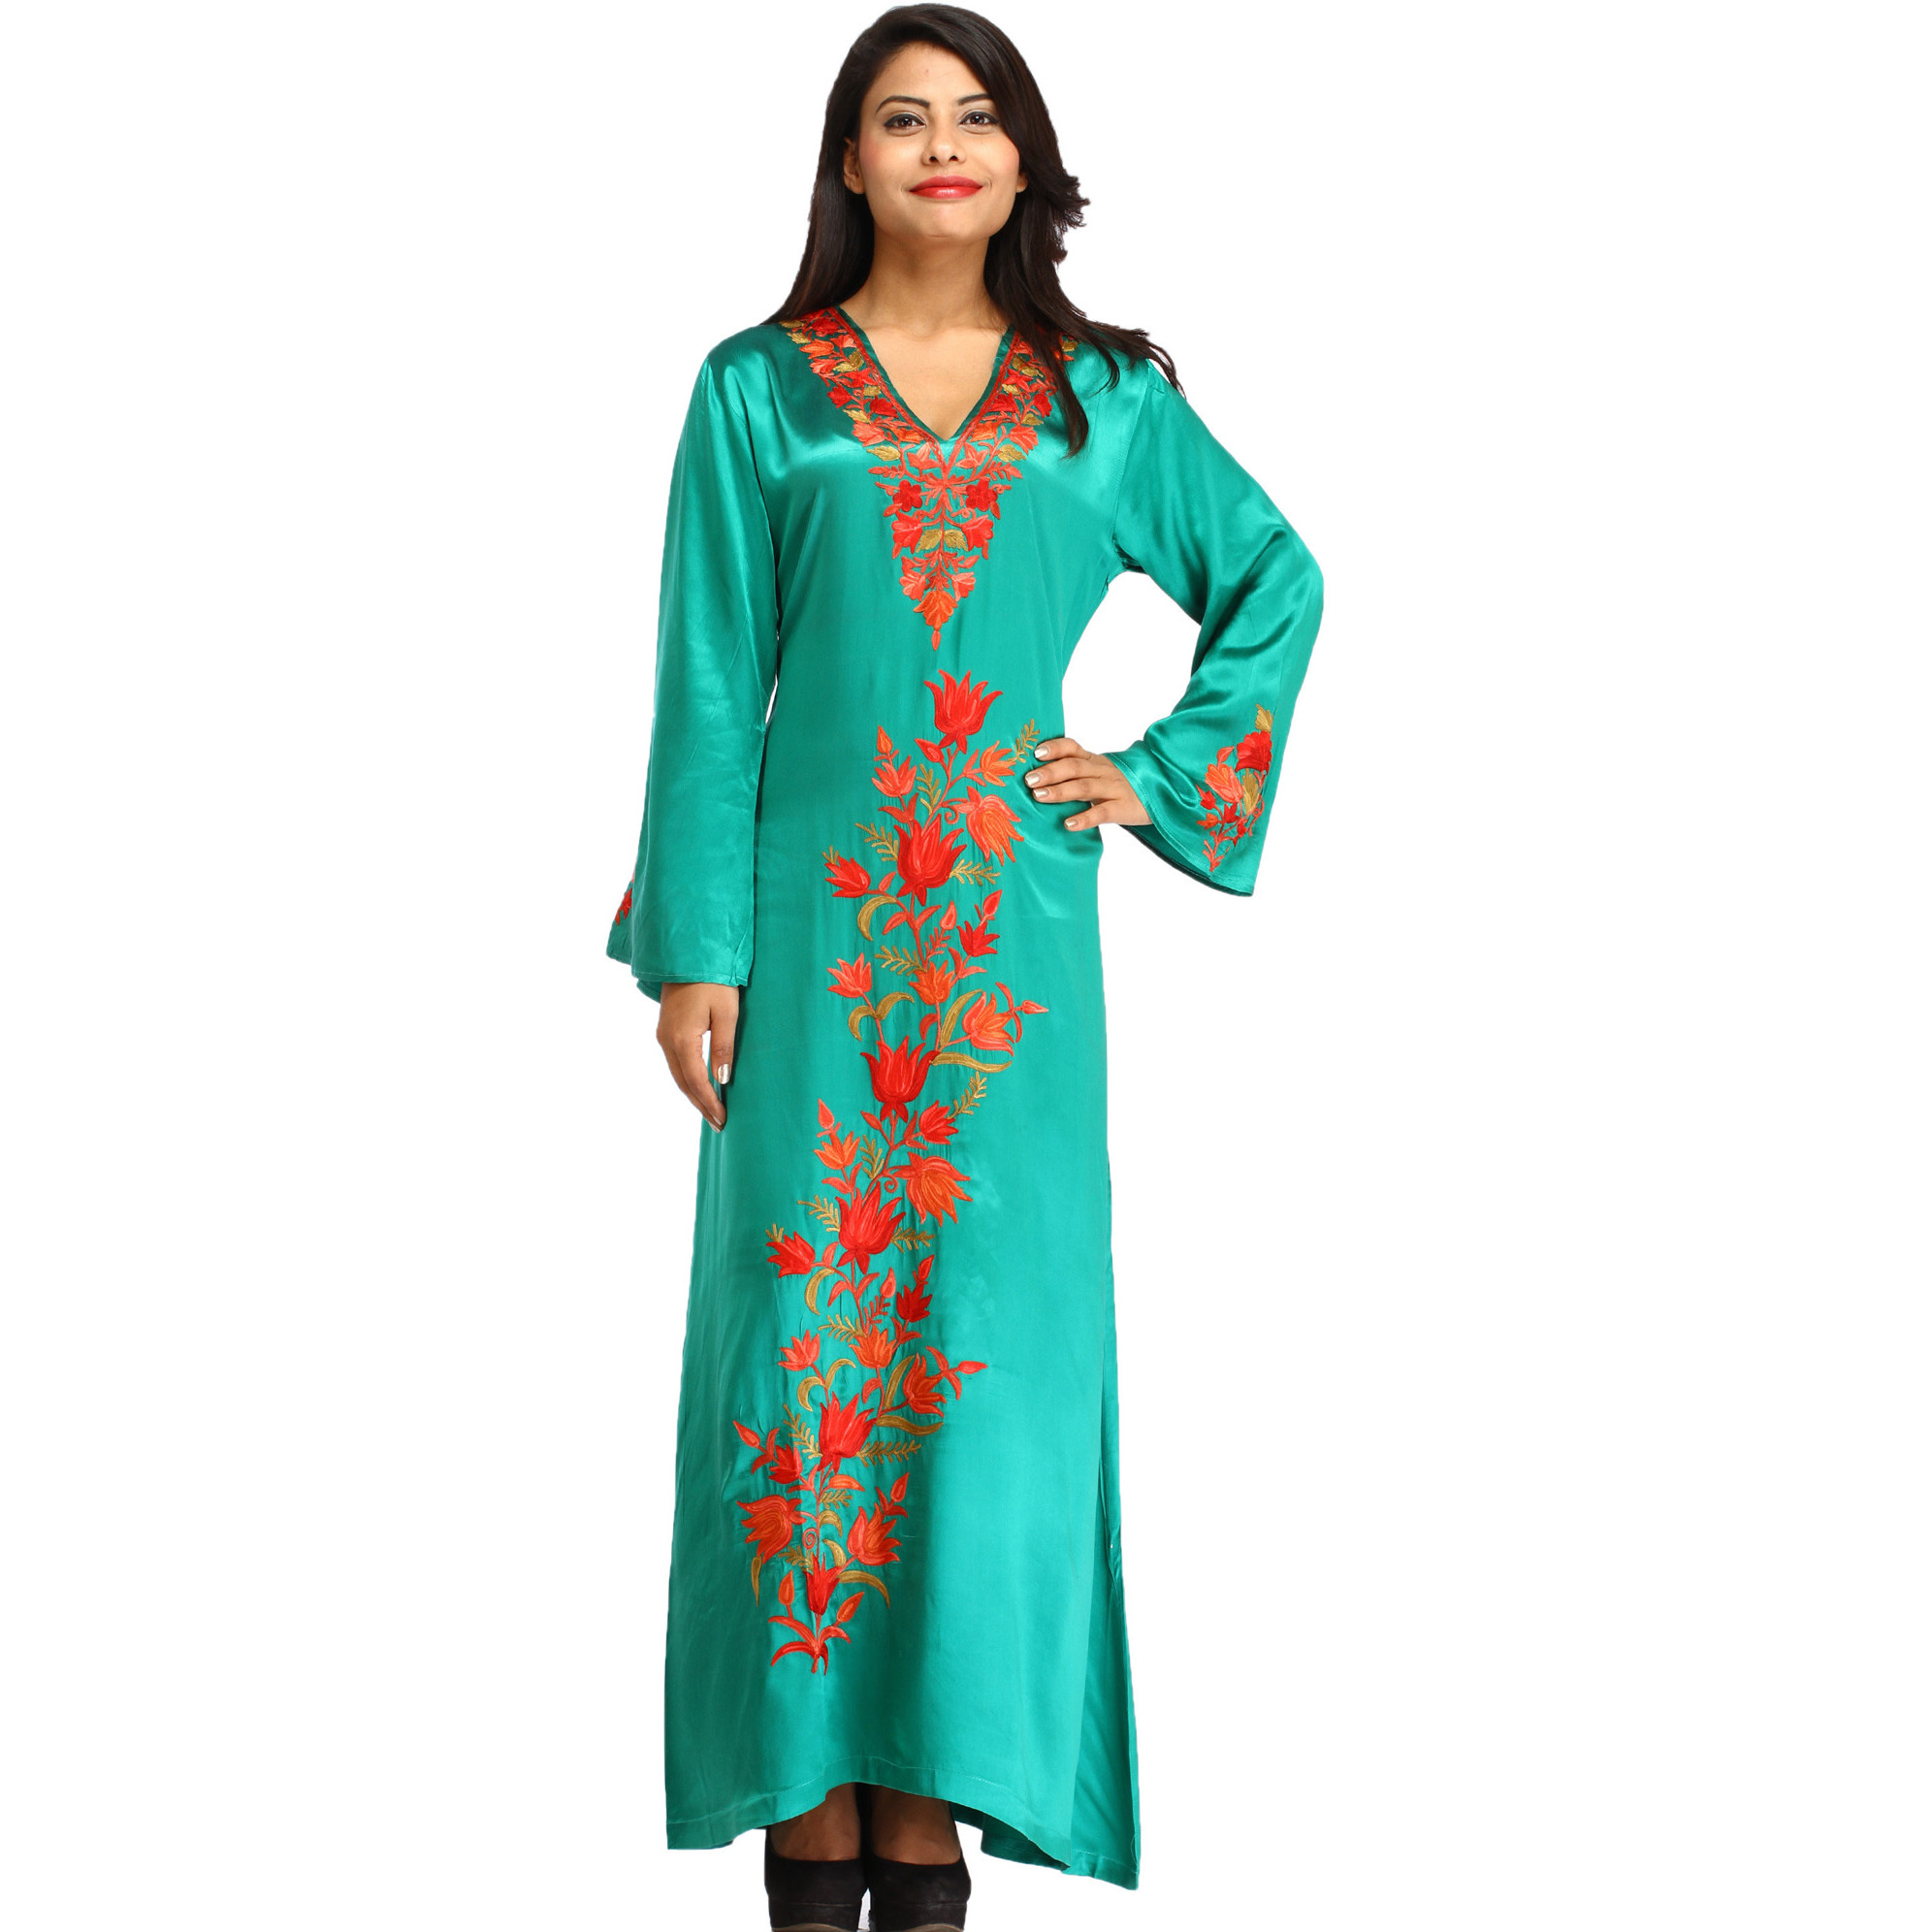 Sea Green Ankle-Length Gown From Kashmir With Ari-Embroidery